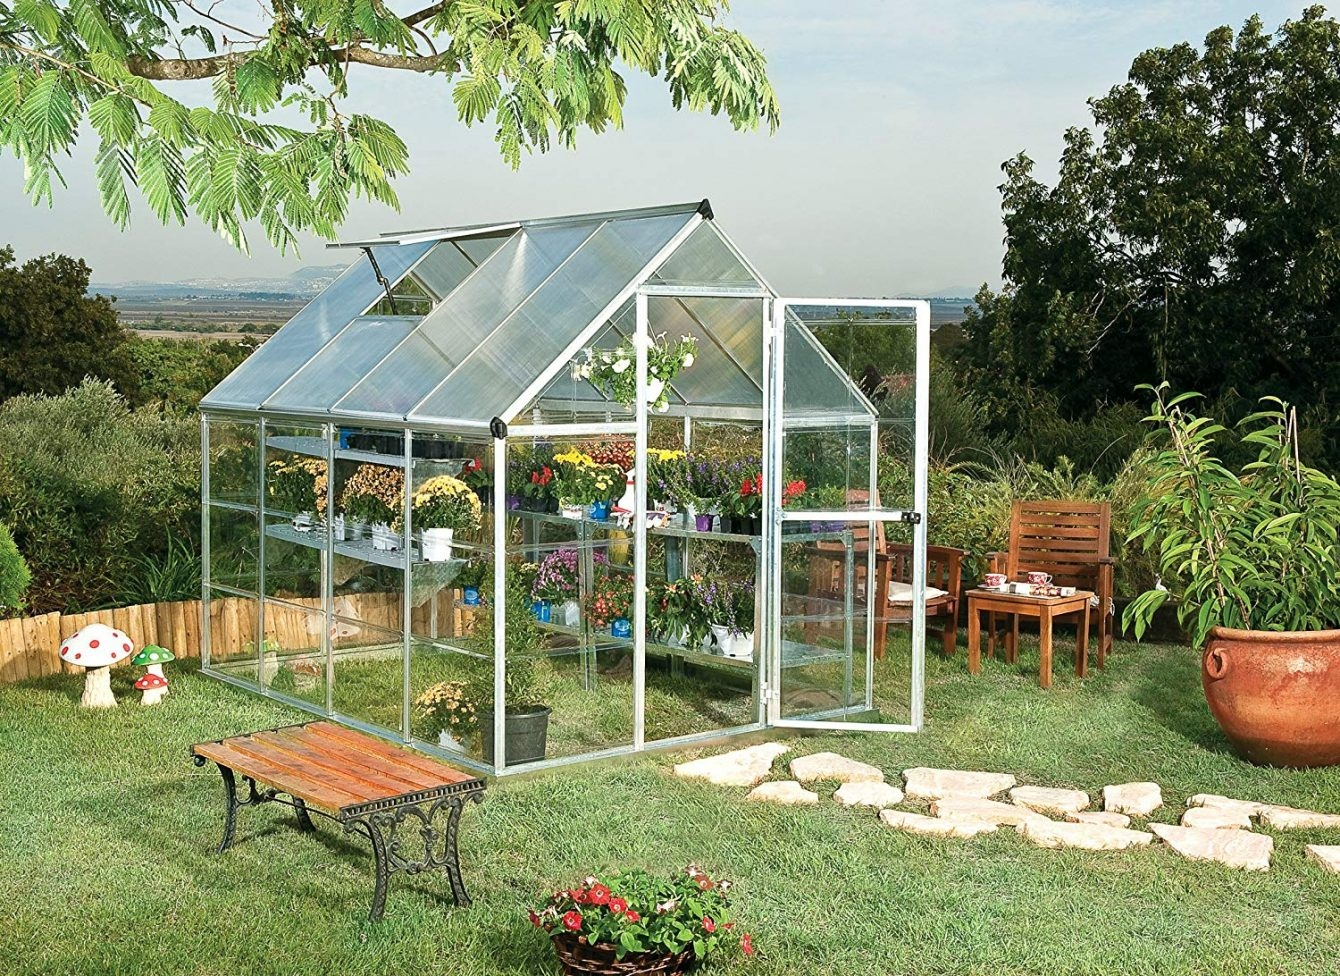 Palram hobby greenhouse for hobby gardening